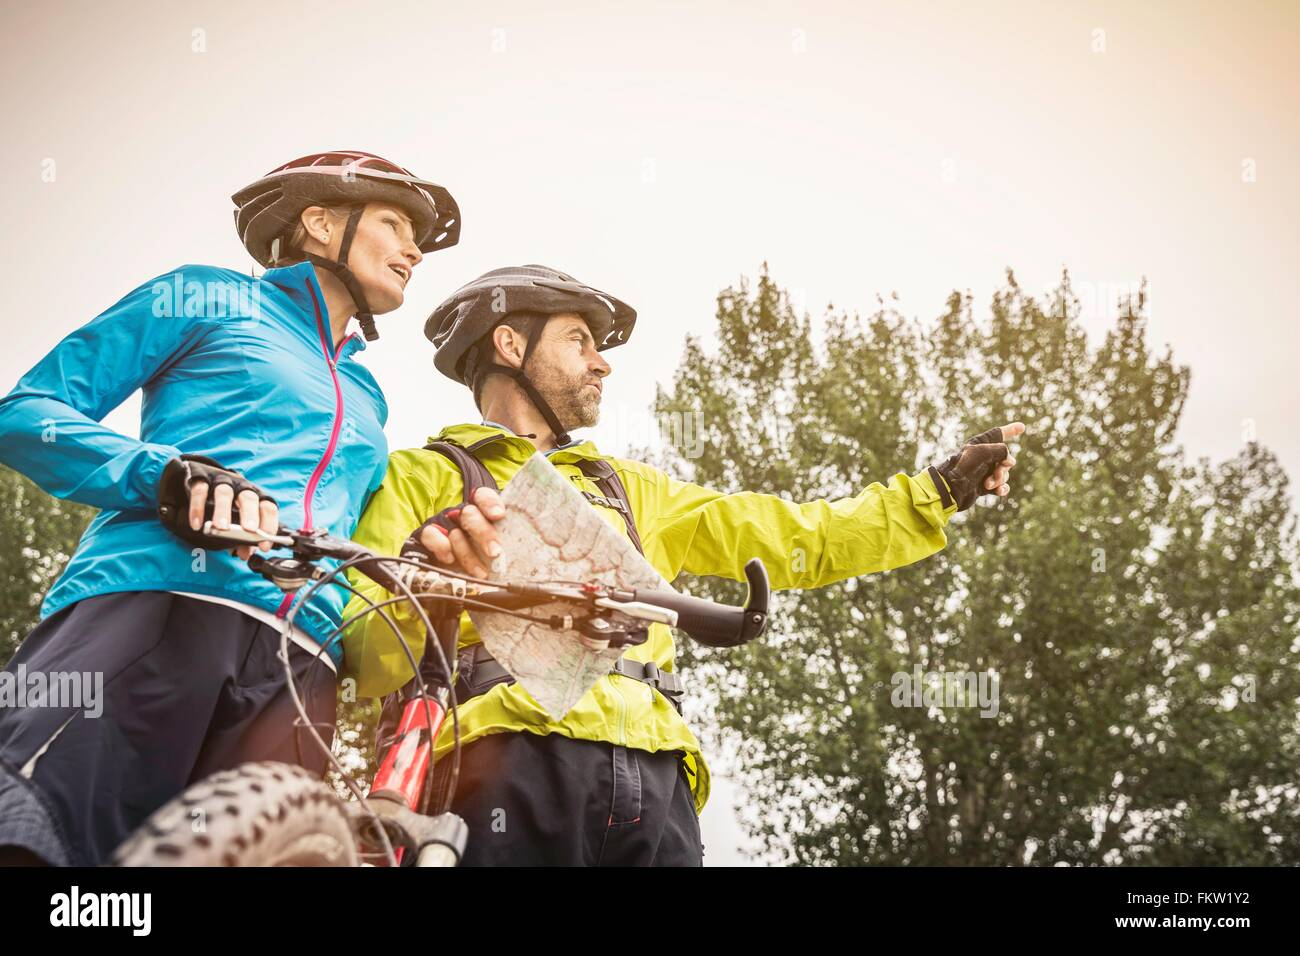 Low angle view of mature mountain biking couple planning with map - Stock Image